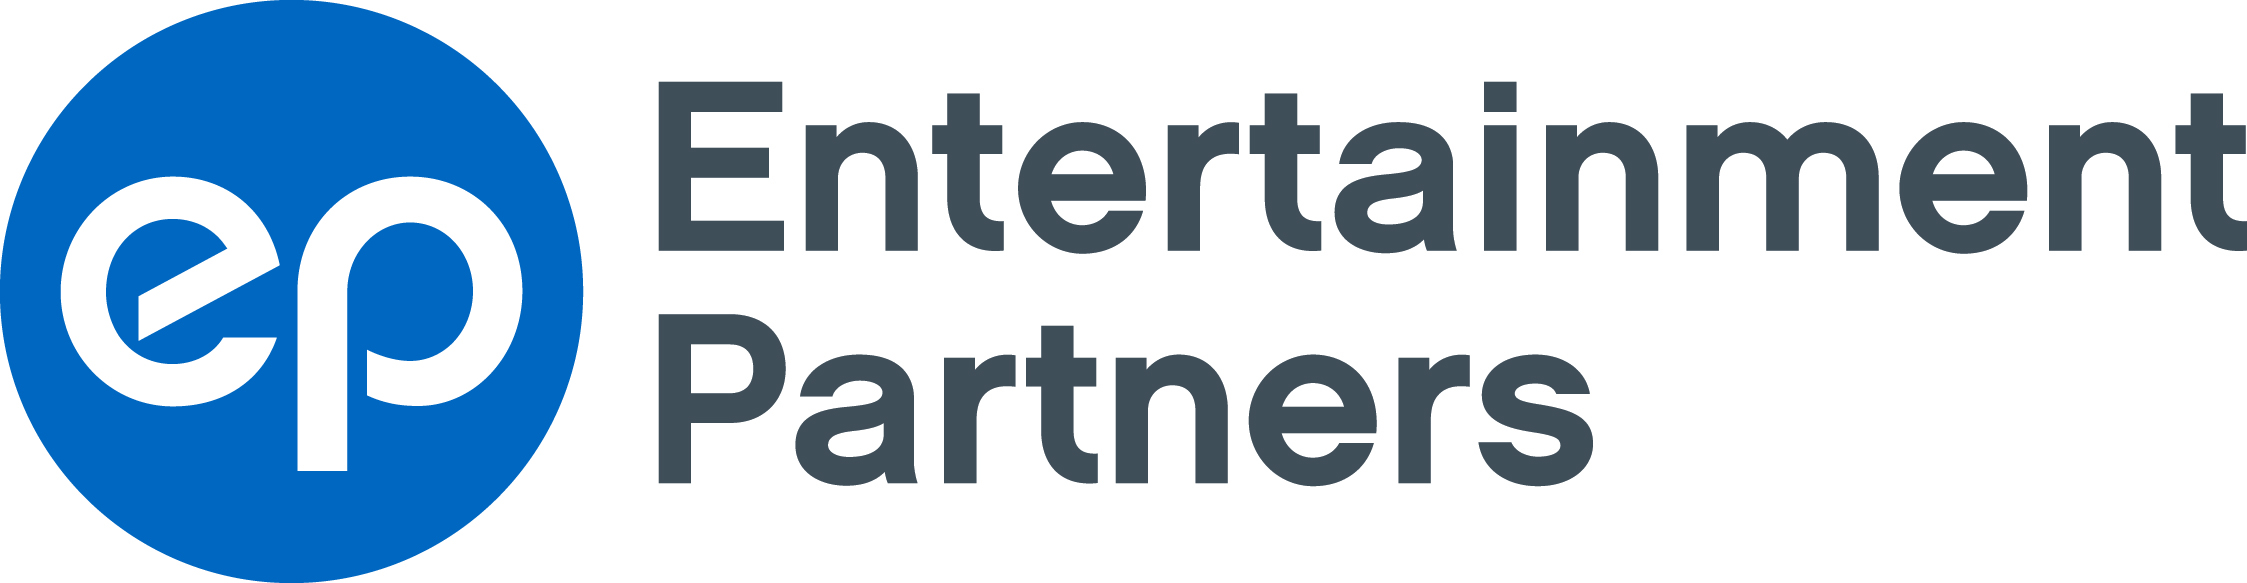 Entertainment-Partners-1.jpg